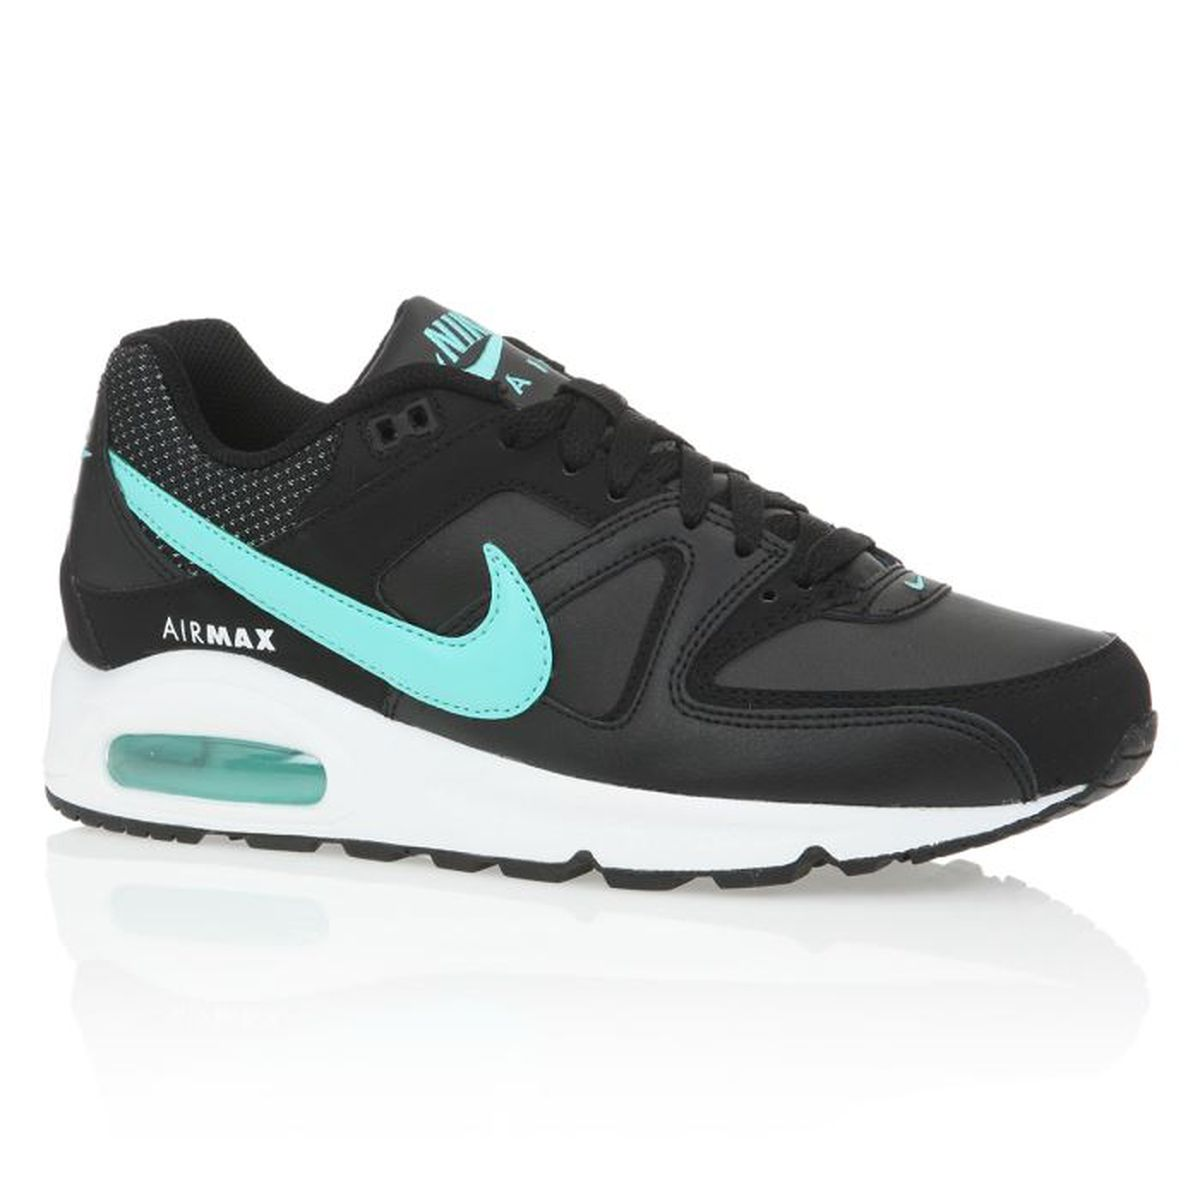 nike air max 70 off cheap nike air max 2017 95 90 basketball scores. Black Bedroom Furniture Sets. Home Design Ideas